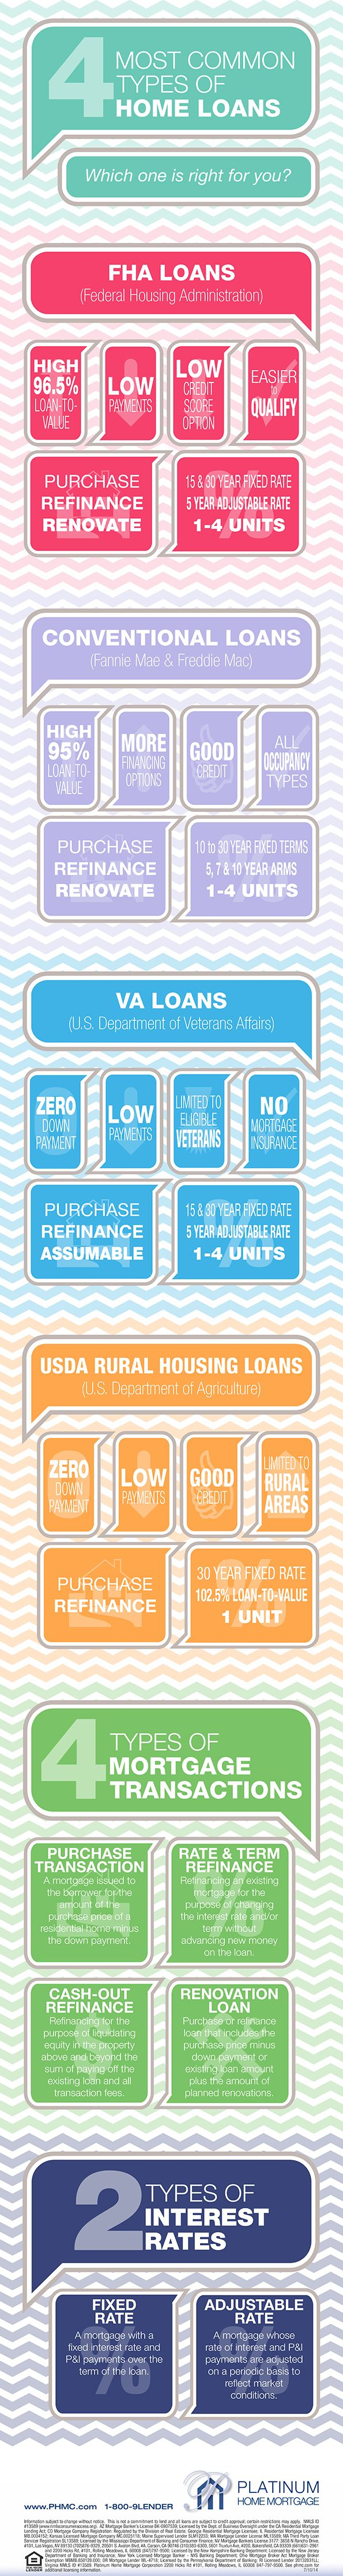 Many different options for financing a home... Find what works for your. www.johnikajoseph.com